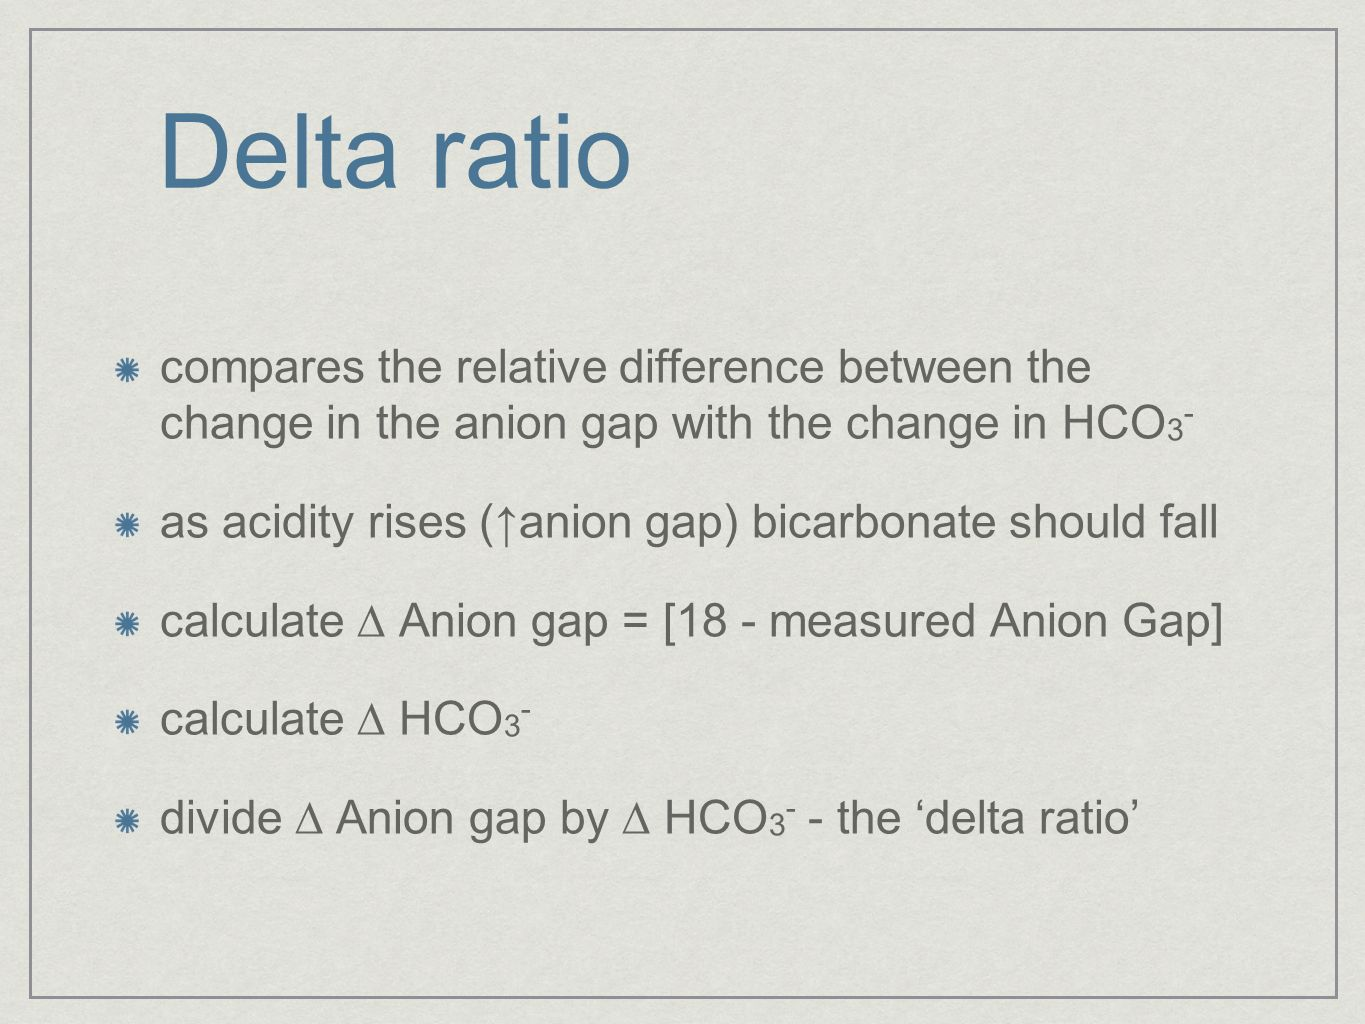 Delta ratio compares the relative difference between the change in the anion gap with the change in HCO3-